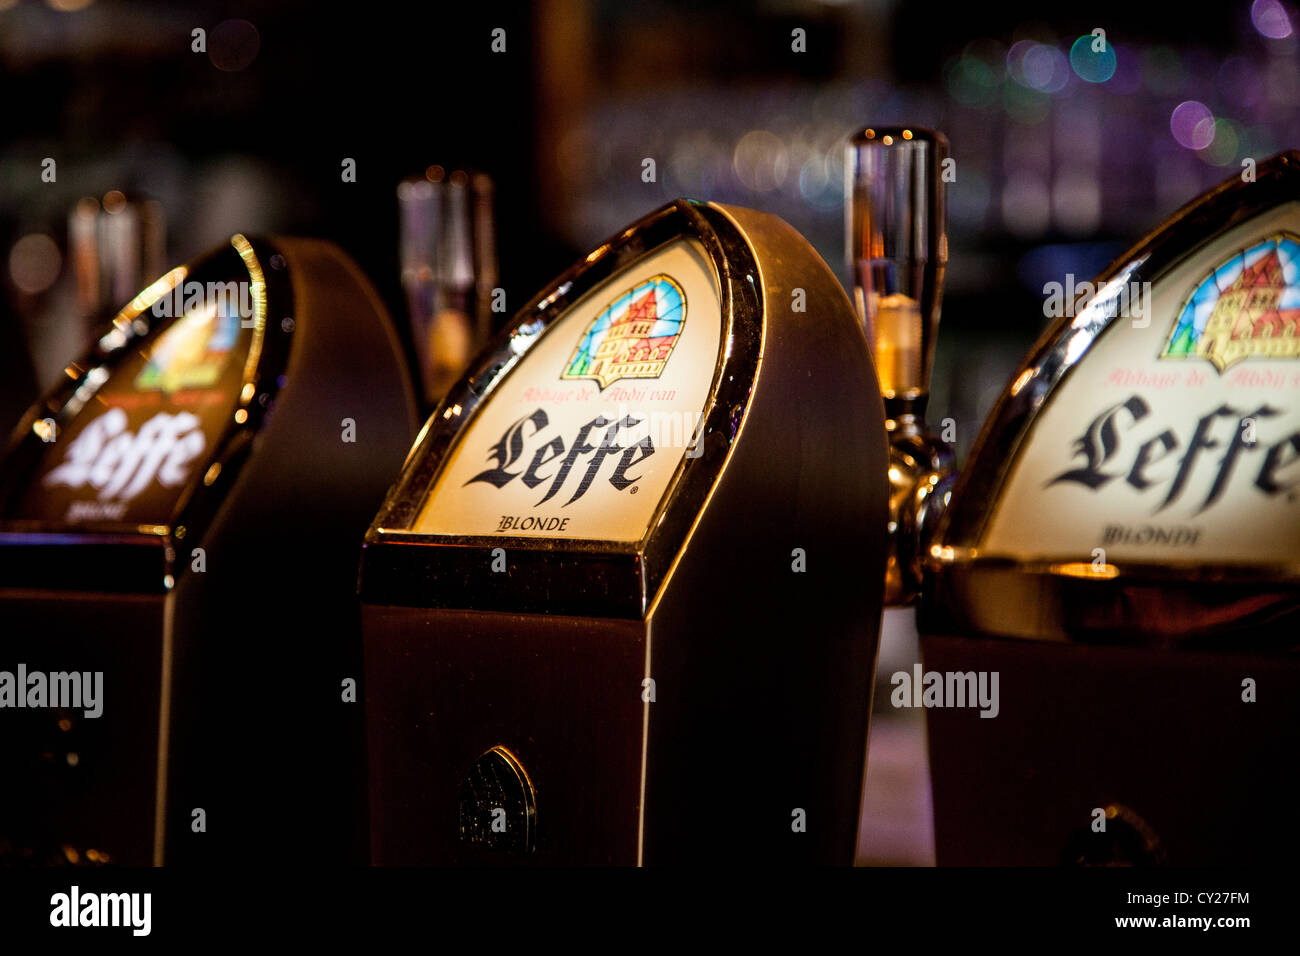 Leffe beer taps dispensers in a French bar - Stock Image